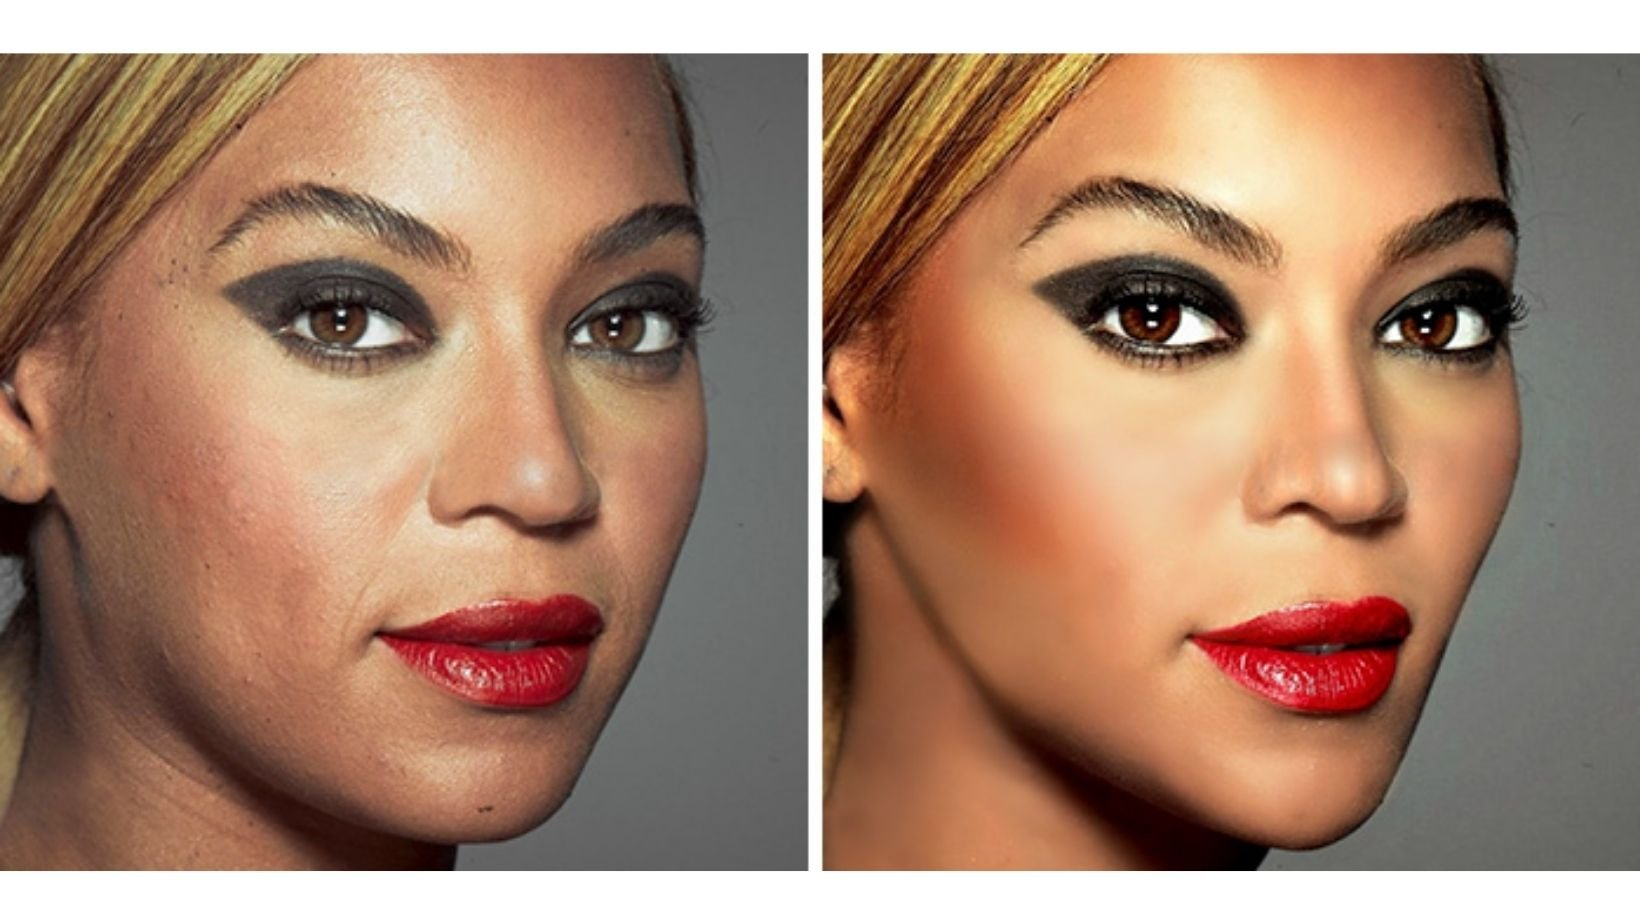 small joys thumbnail 7.jpg?resize=412,232 - 16 Celebrity Before And After Photoshop Images That Set Unrealistic Beauty Standards